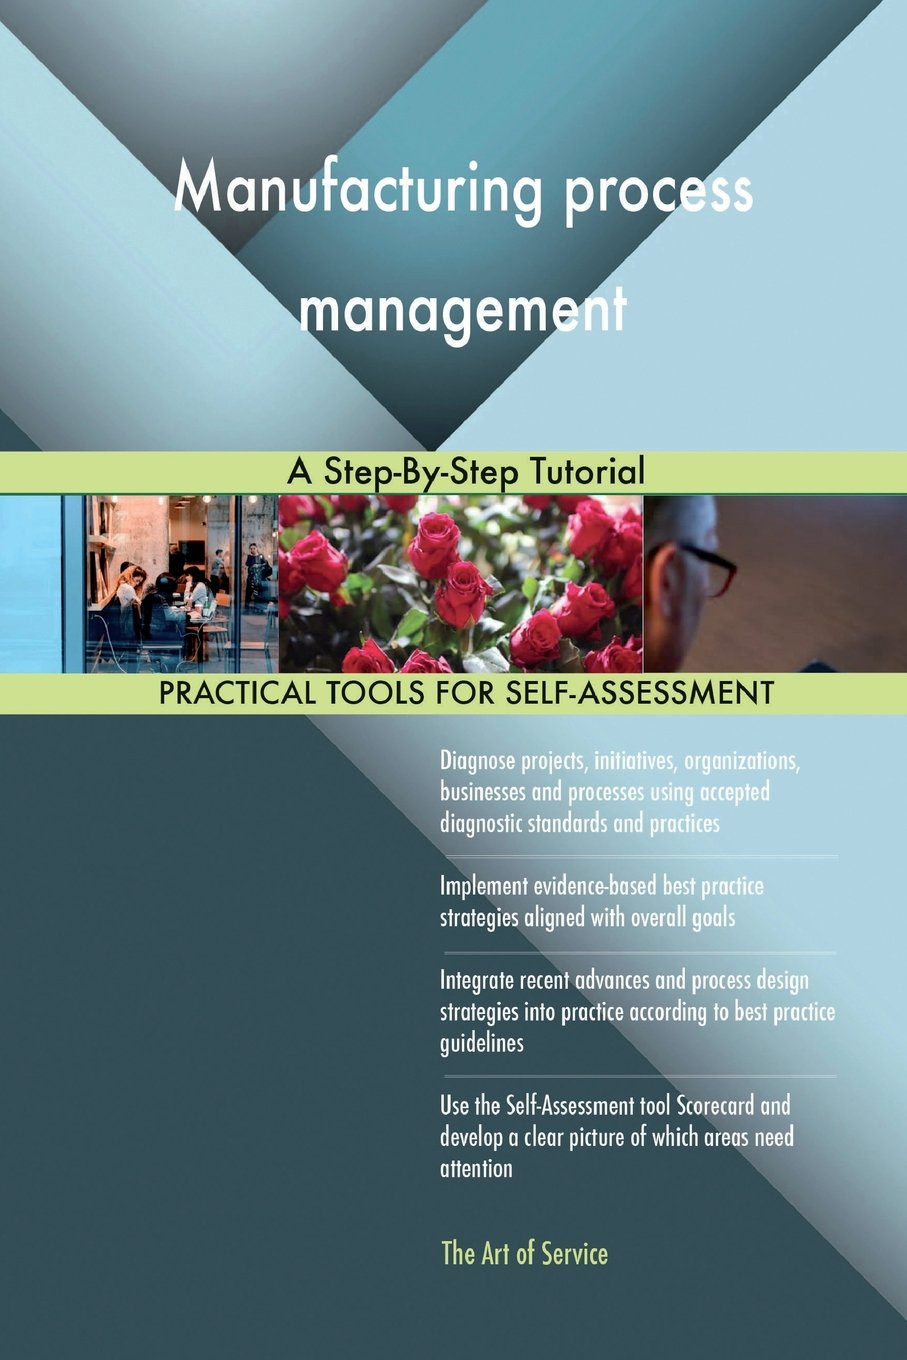 Manufacturing process management: A Step-By-Step Tutorial